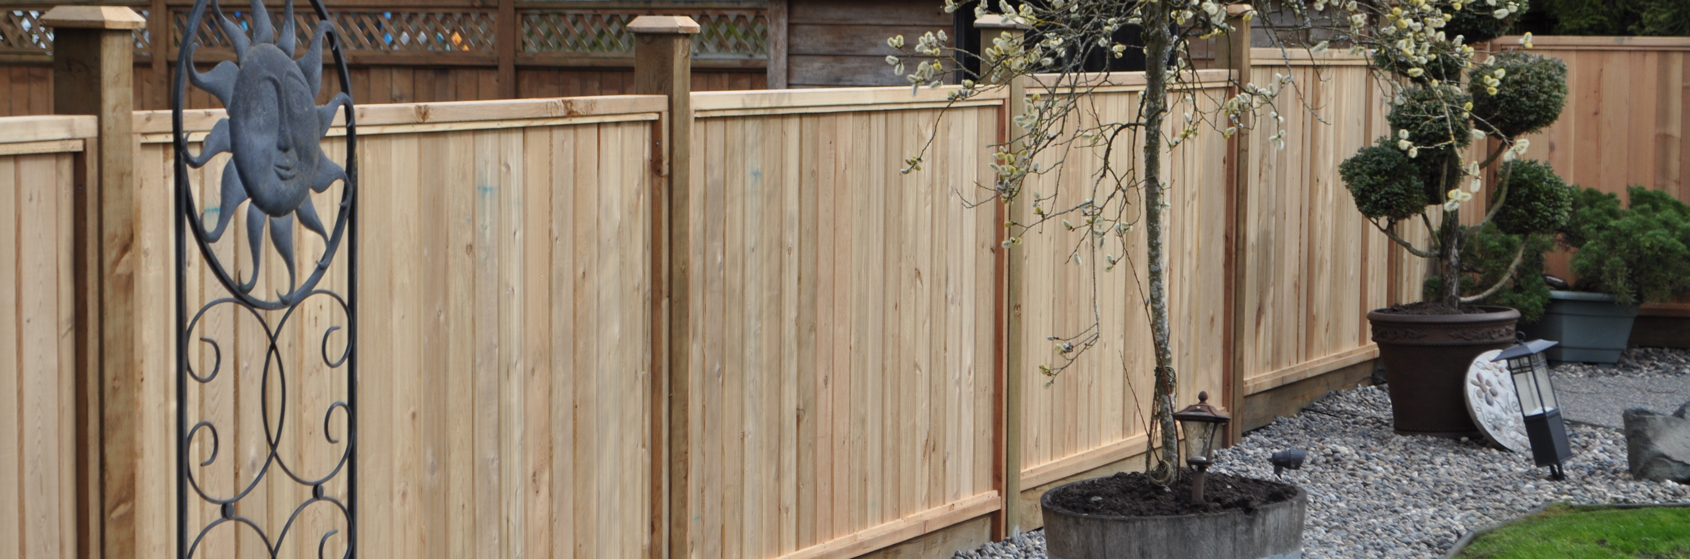 Cedar Fence Panels Wooden Fence Panels Big Red Cedar